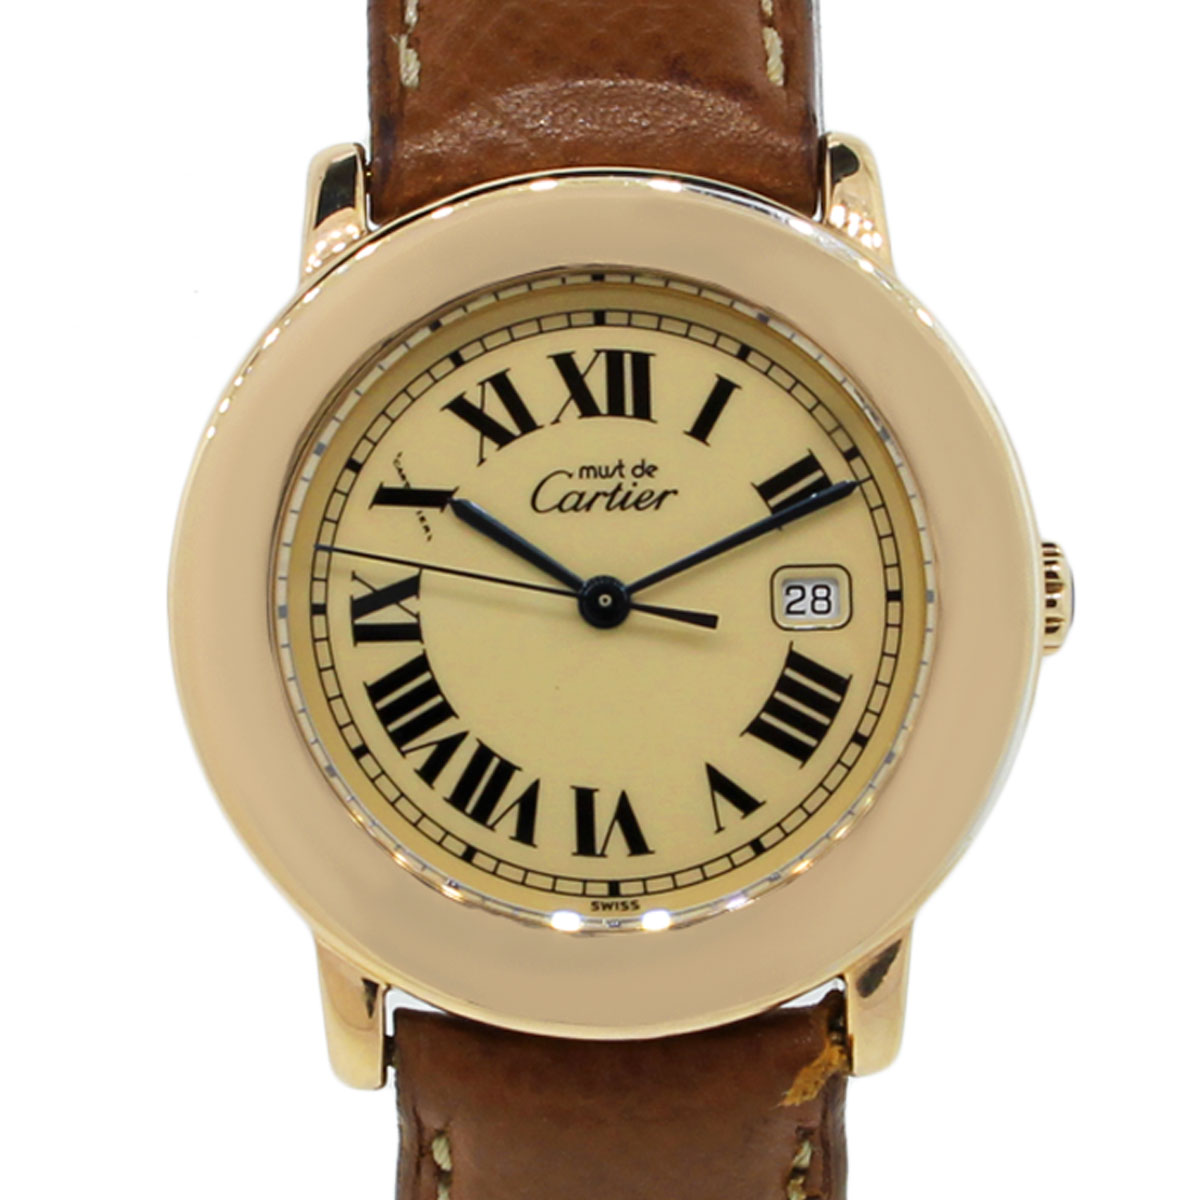 Cartier – Fine watches (Ballon Bleu de Cartier, Tank), jewelry, wedding and engagement rings, leather goods and other luxury goods from the famous French watchma.